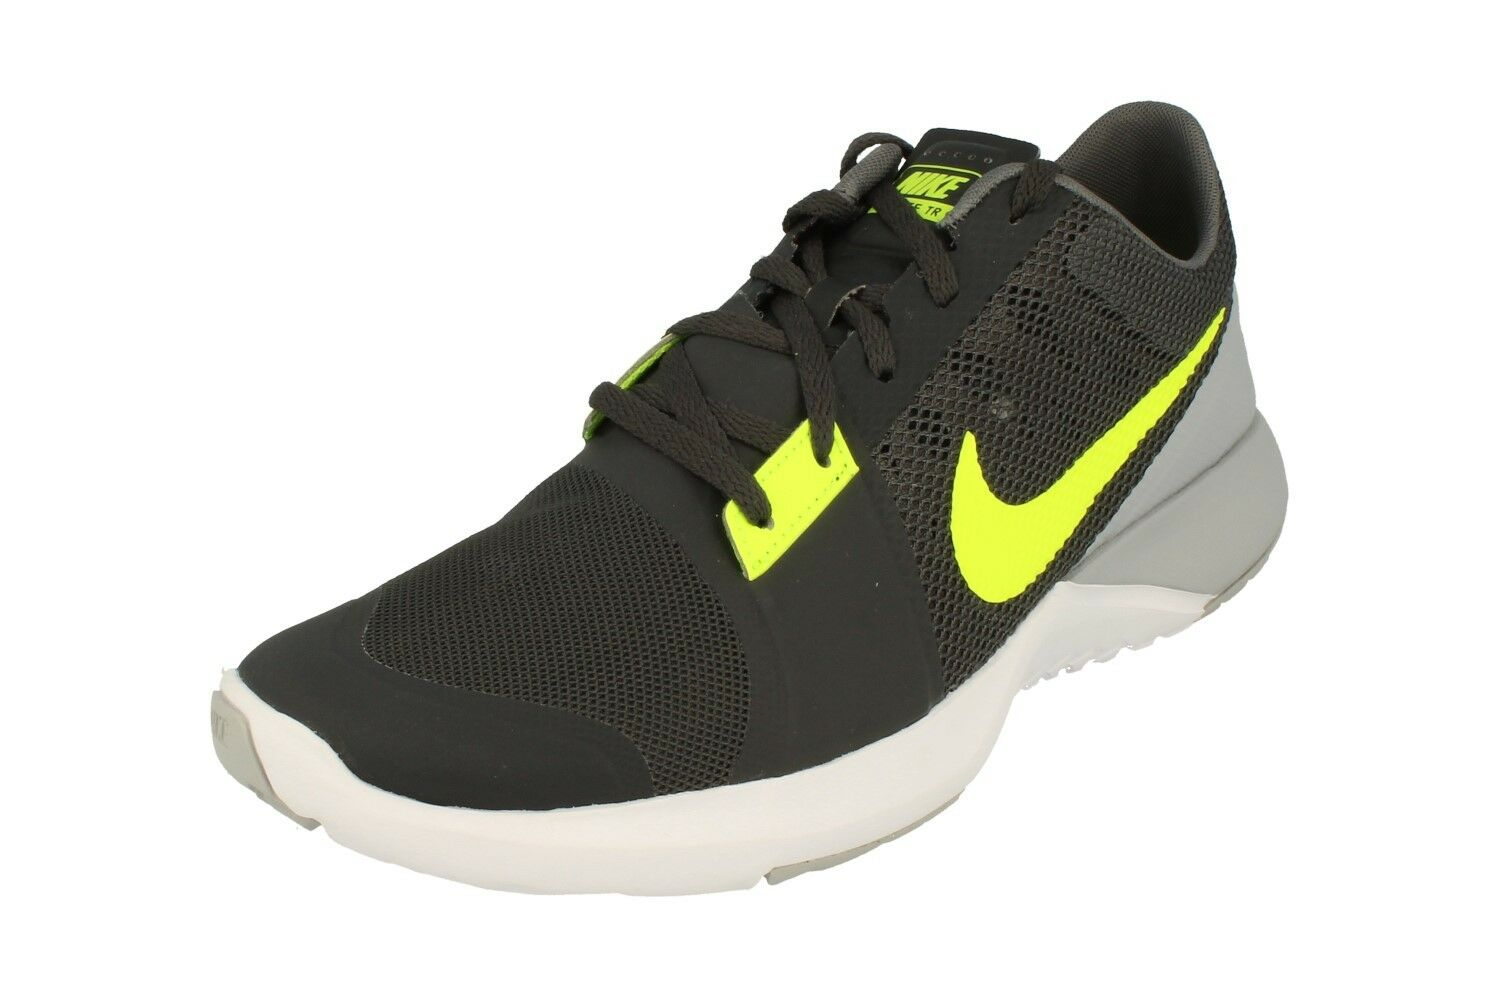 Nike Fs Lite Trainer Trainers 3  Uomo Running Trainers Trainer 807113 Sneakers Schuhes 003 13af84